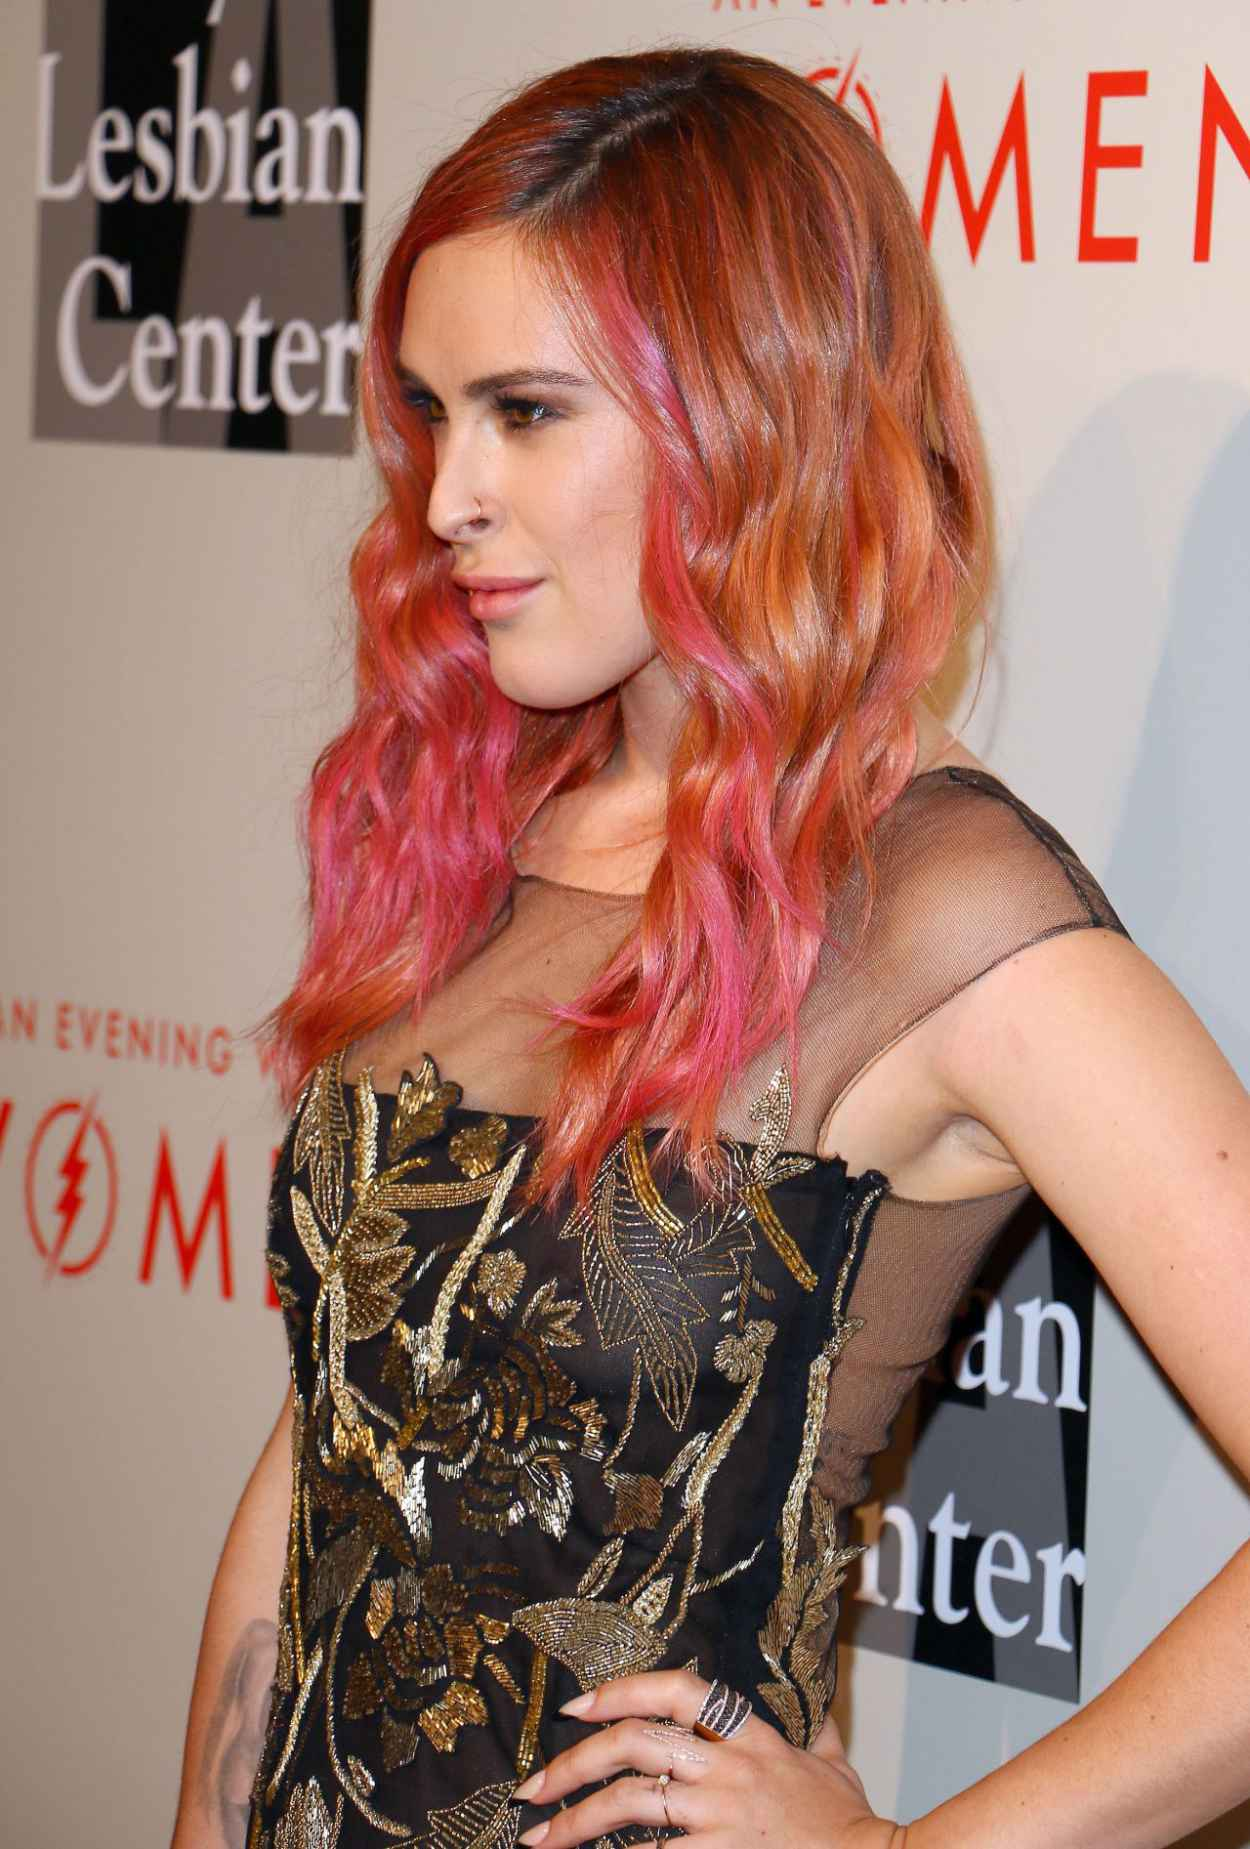 Rumer Willis - An Evening With Women - May 2015-5